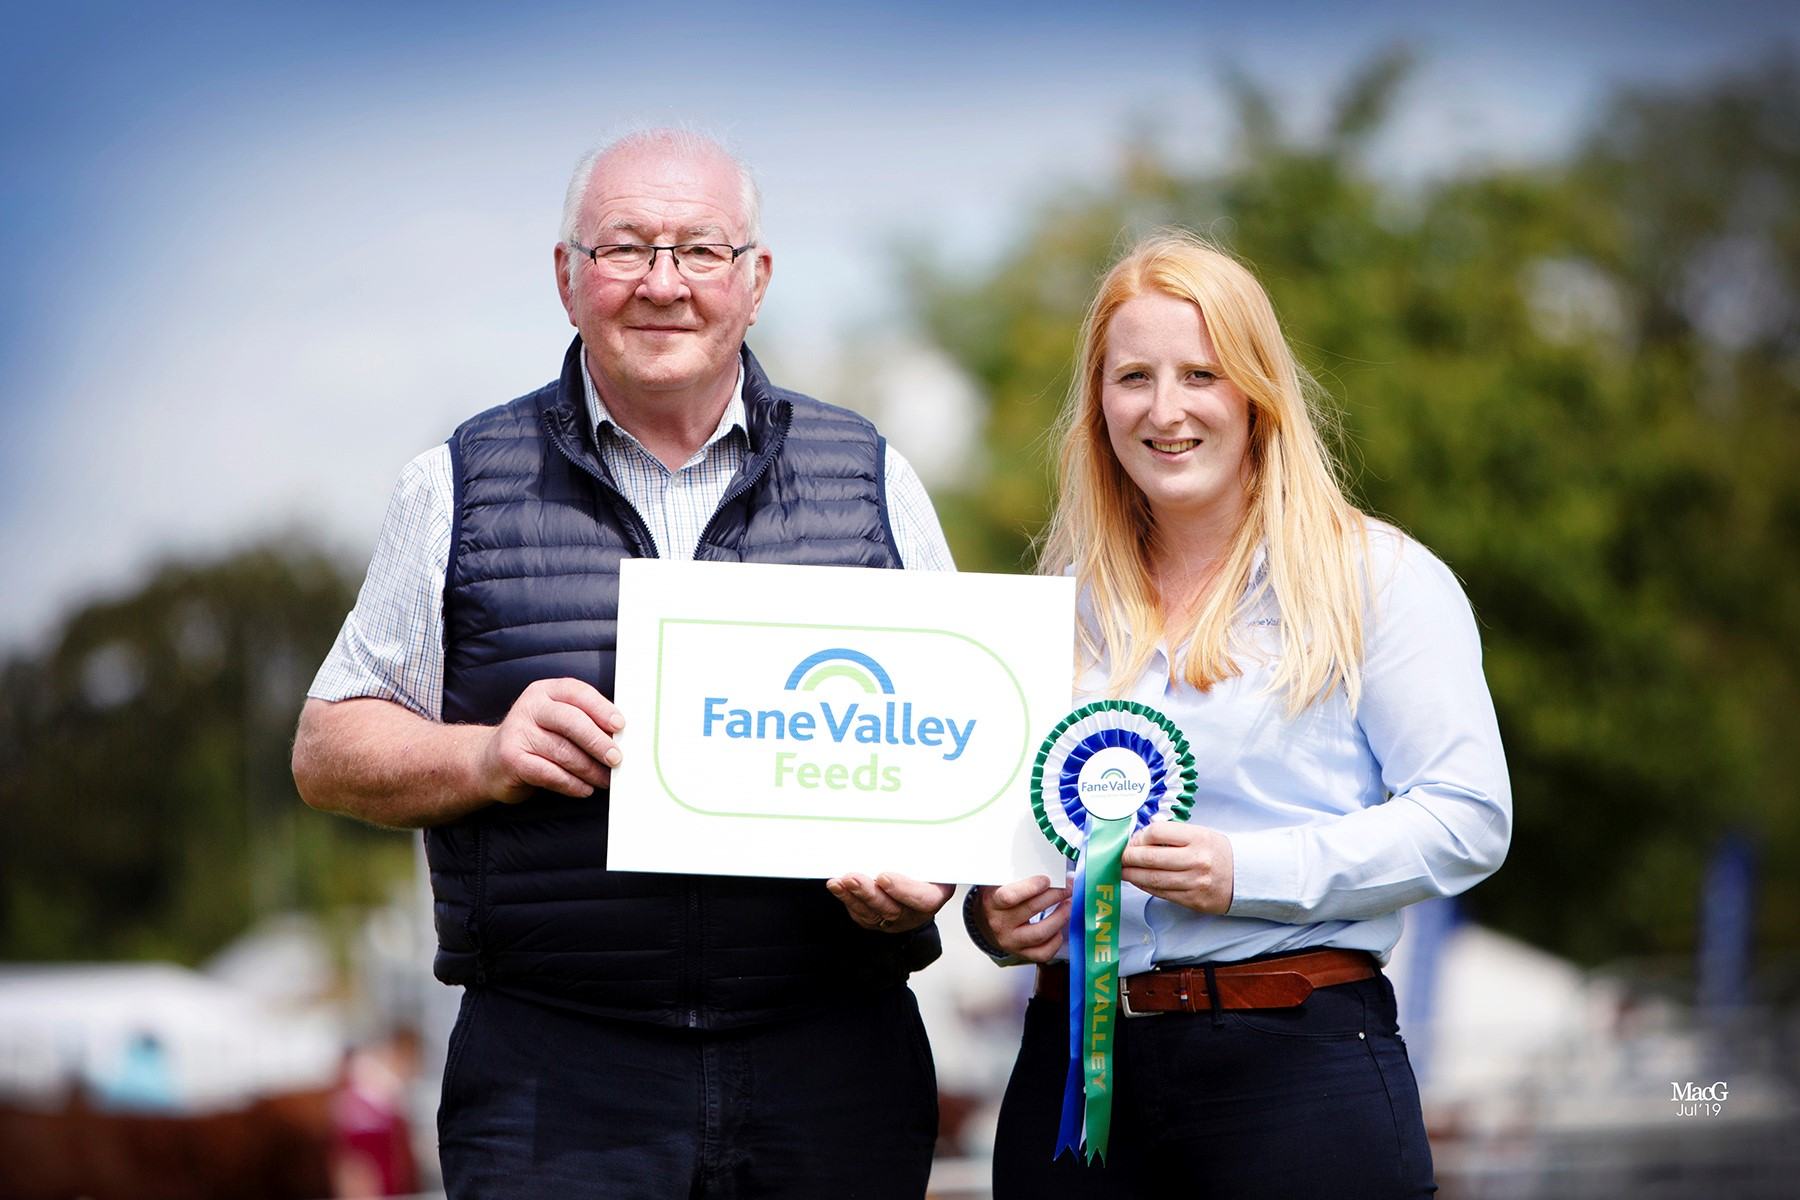 David Hazelton, Dungannon, won the award for the exhibitor gaining the most points at the National Show. He receive the award from Laura Kennedy, Fane Valley.